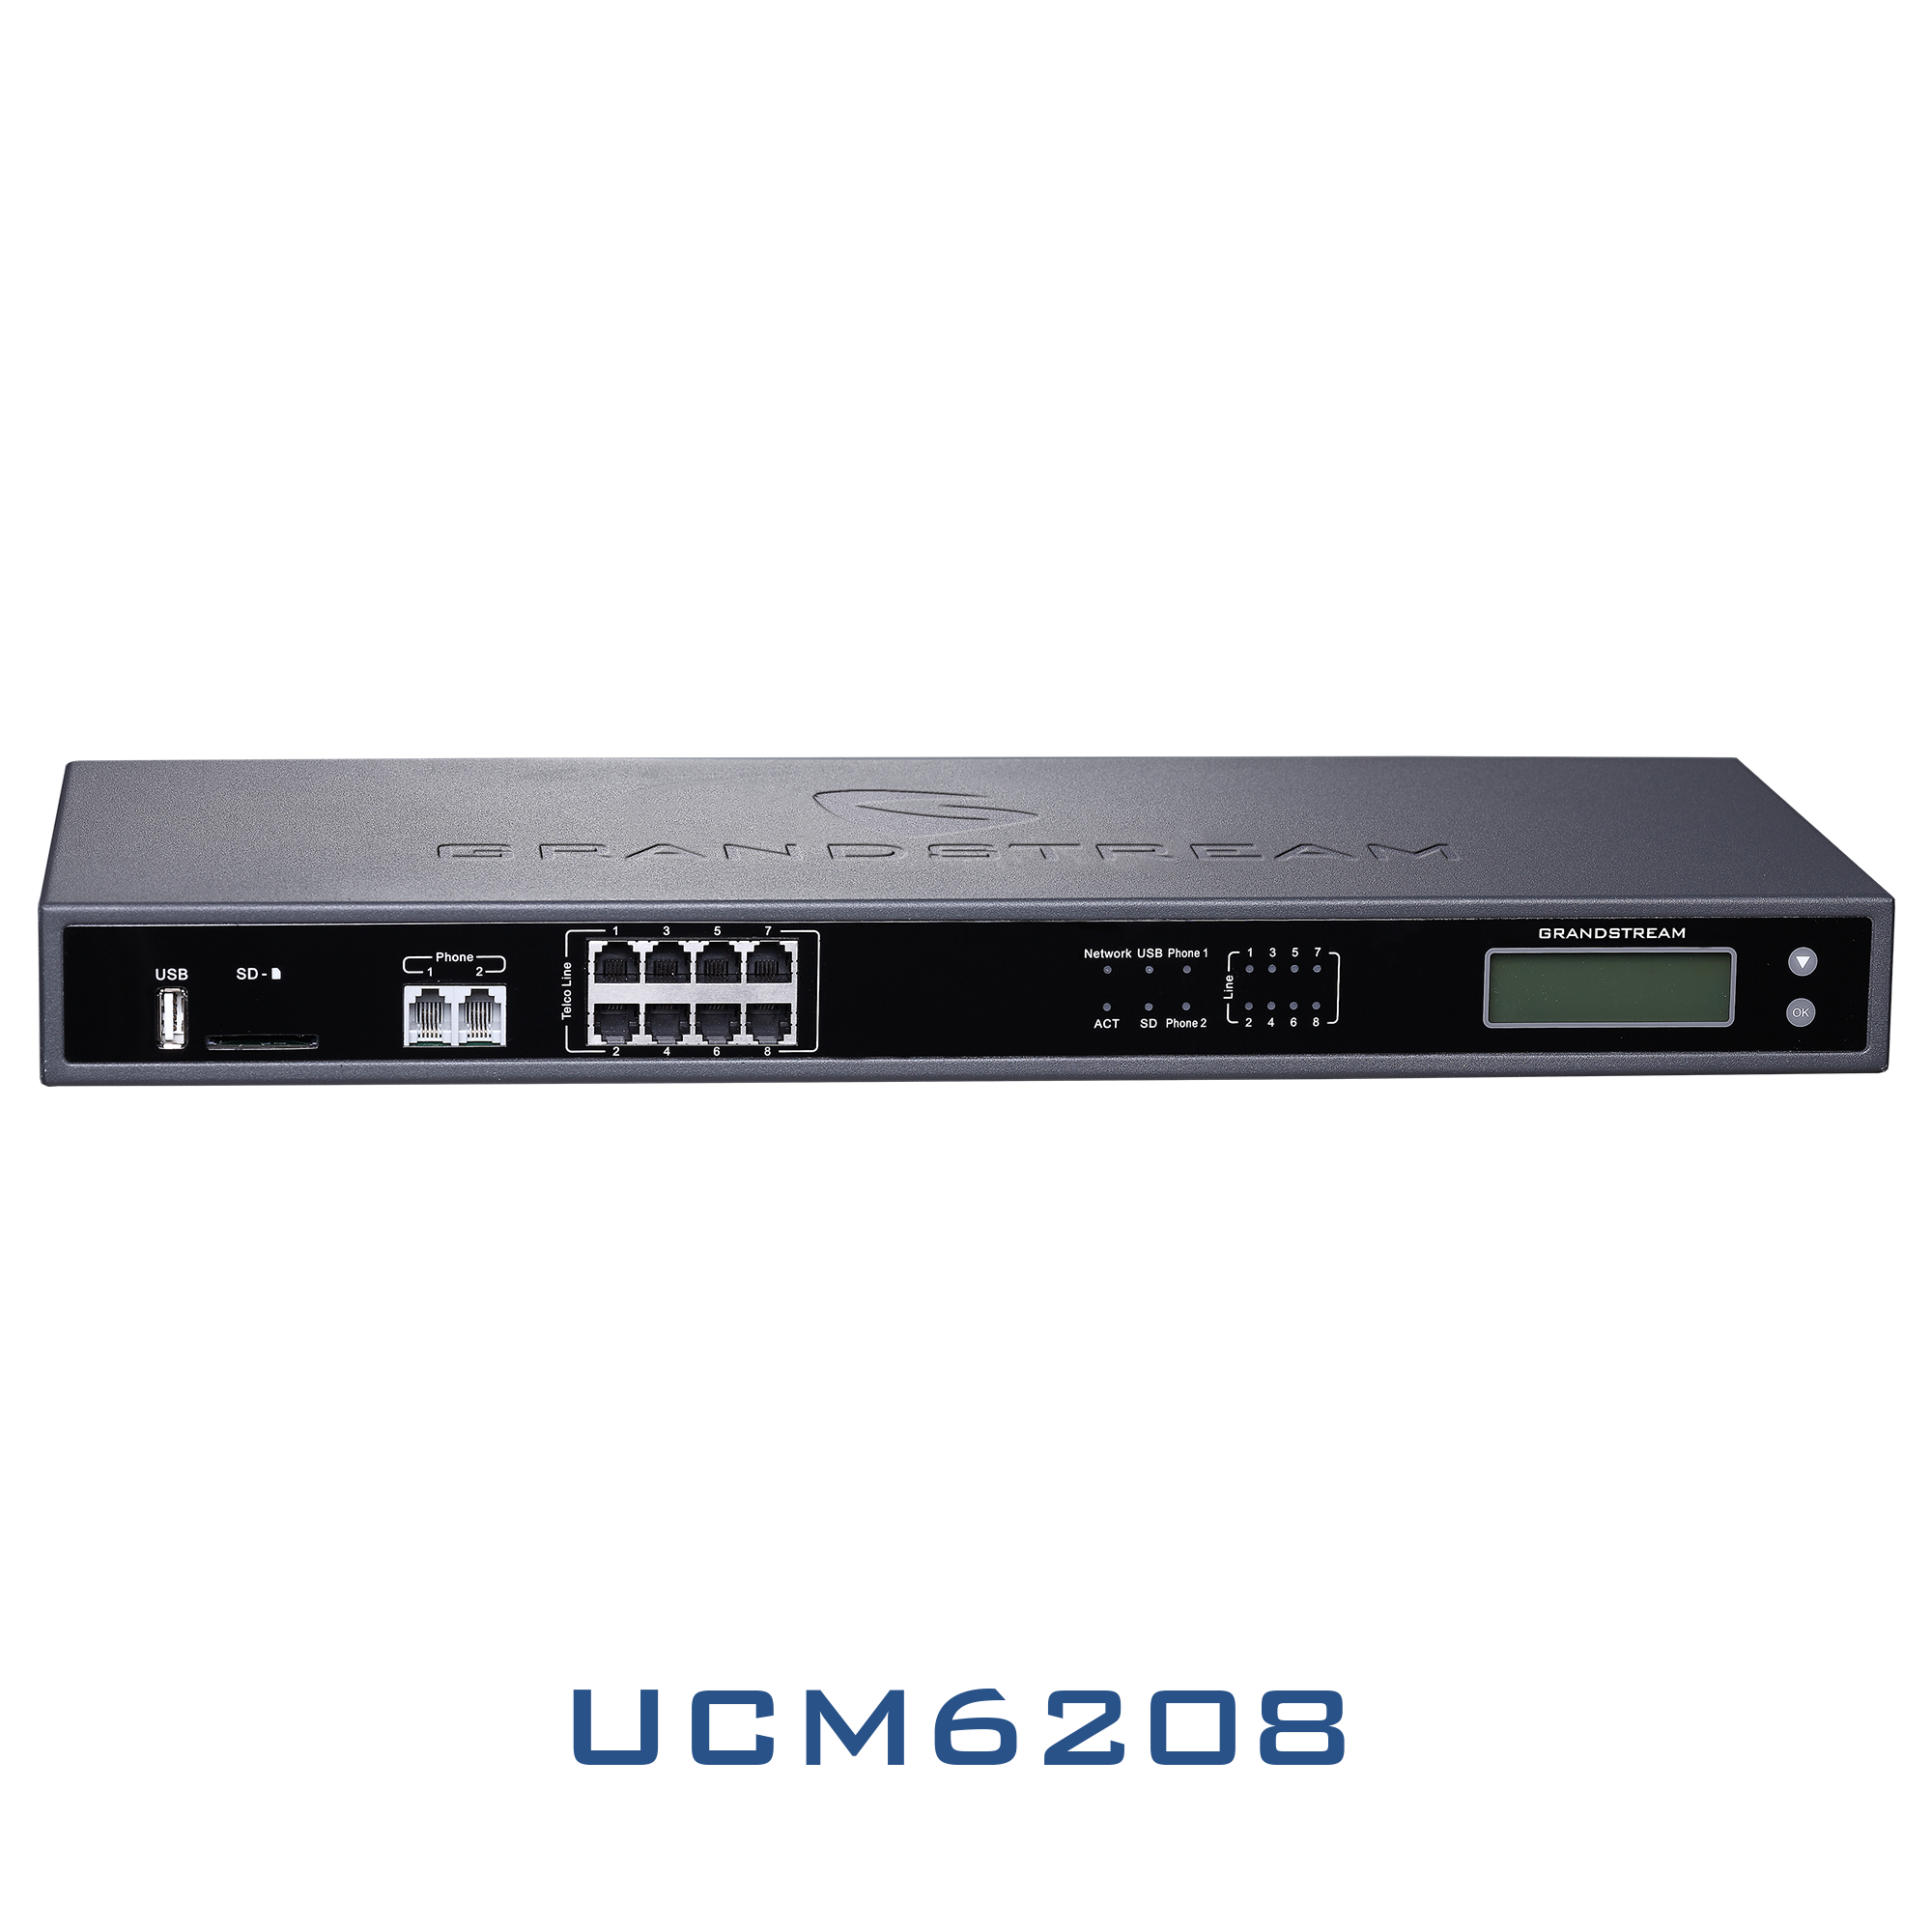 ucm6208_front_web